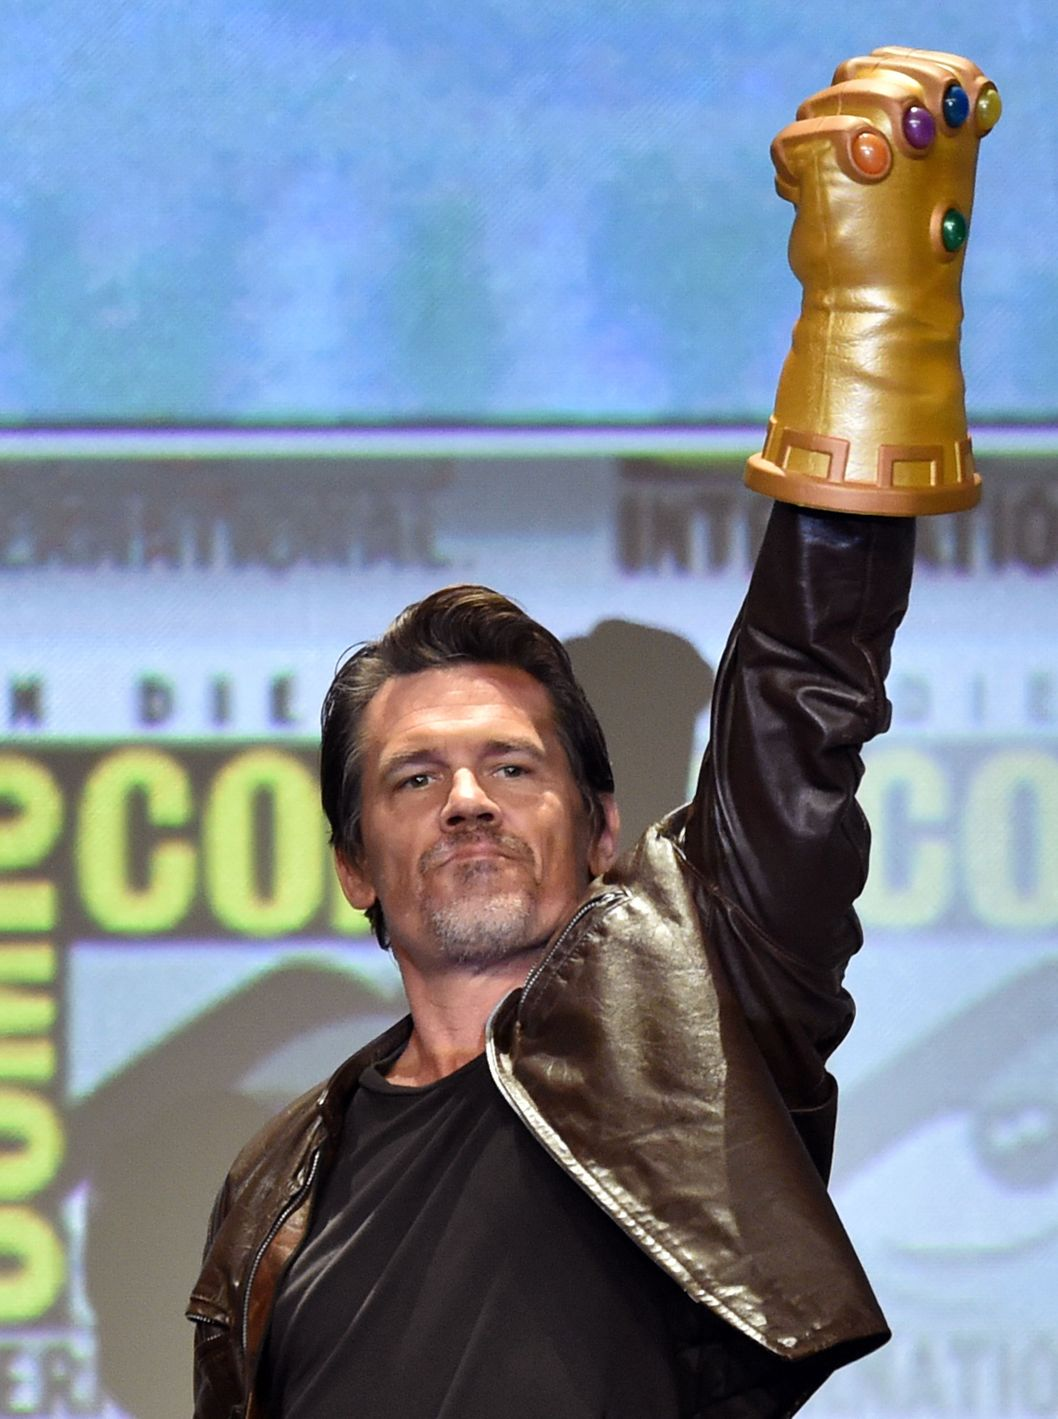 SAN DIEGO, CA - JULY 26:  Actor Josh Brolin attends the Marvel Studios panel during Comic-Con International 2014 at San Diego Convention Center on July 26, 2014 in San Diego, California.  (Photo by Kevin Winter/Getty Images)